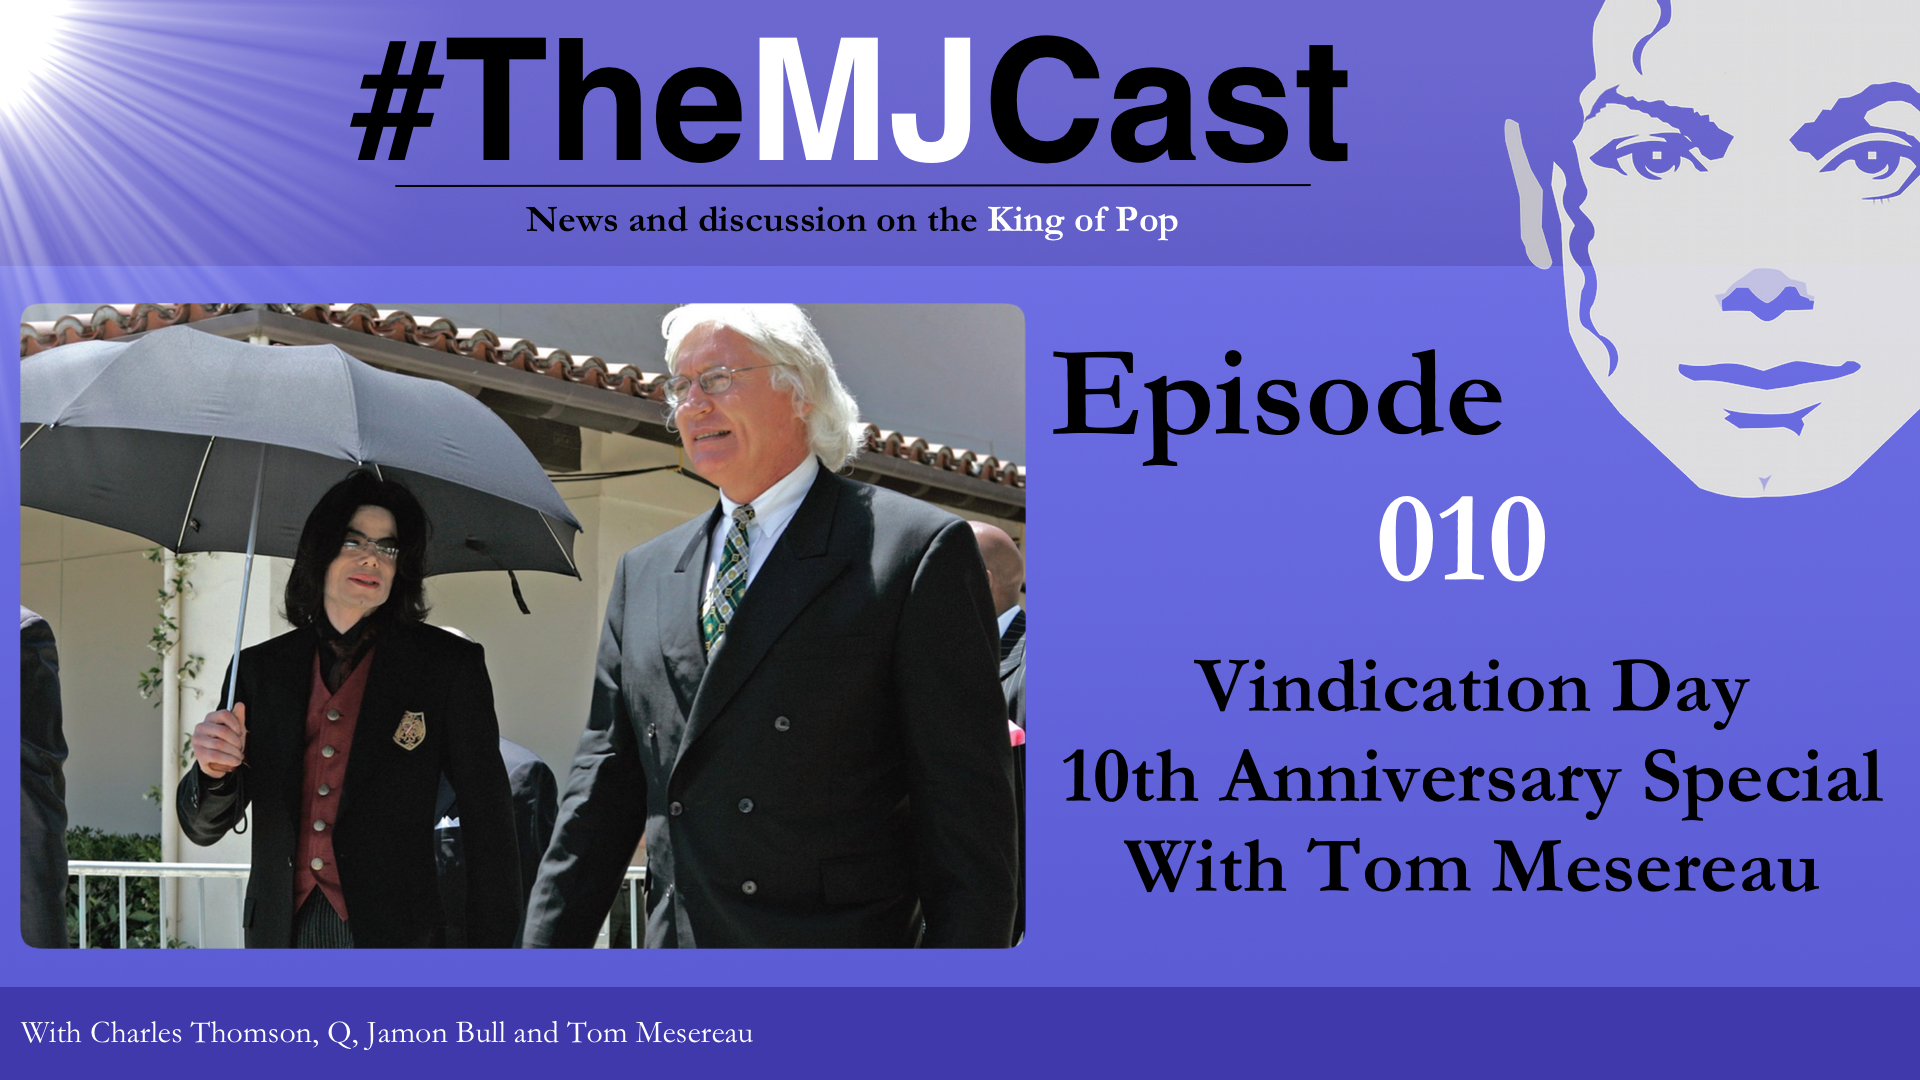 Episode 010 - Vindication Day 10th Anniversary Special With Tom Mesereau YouTube Art